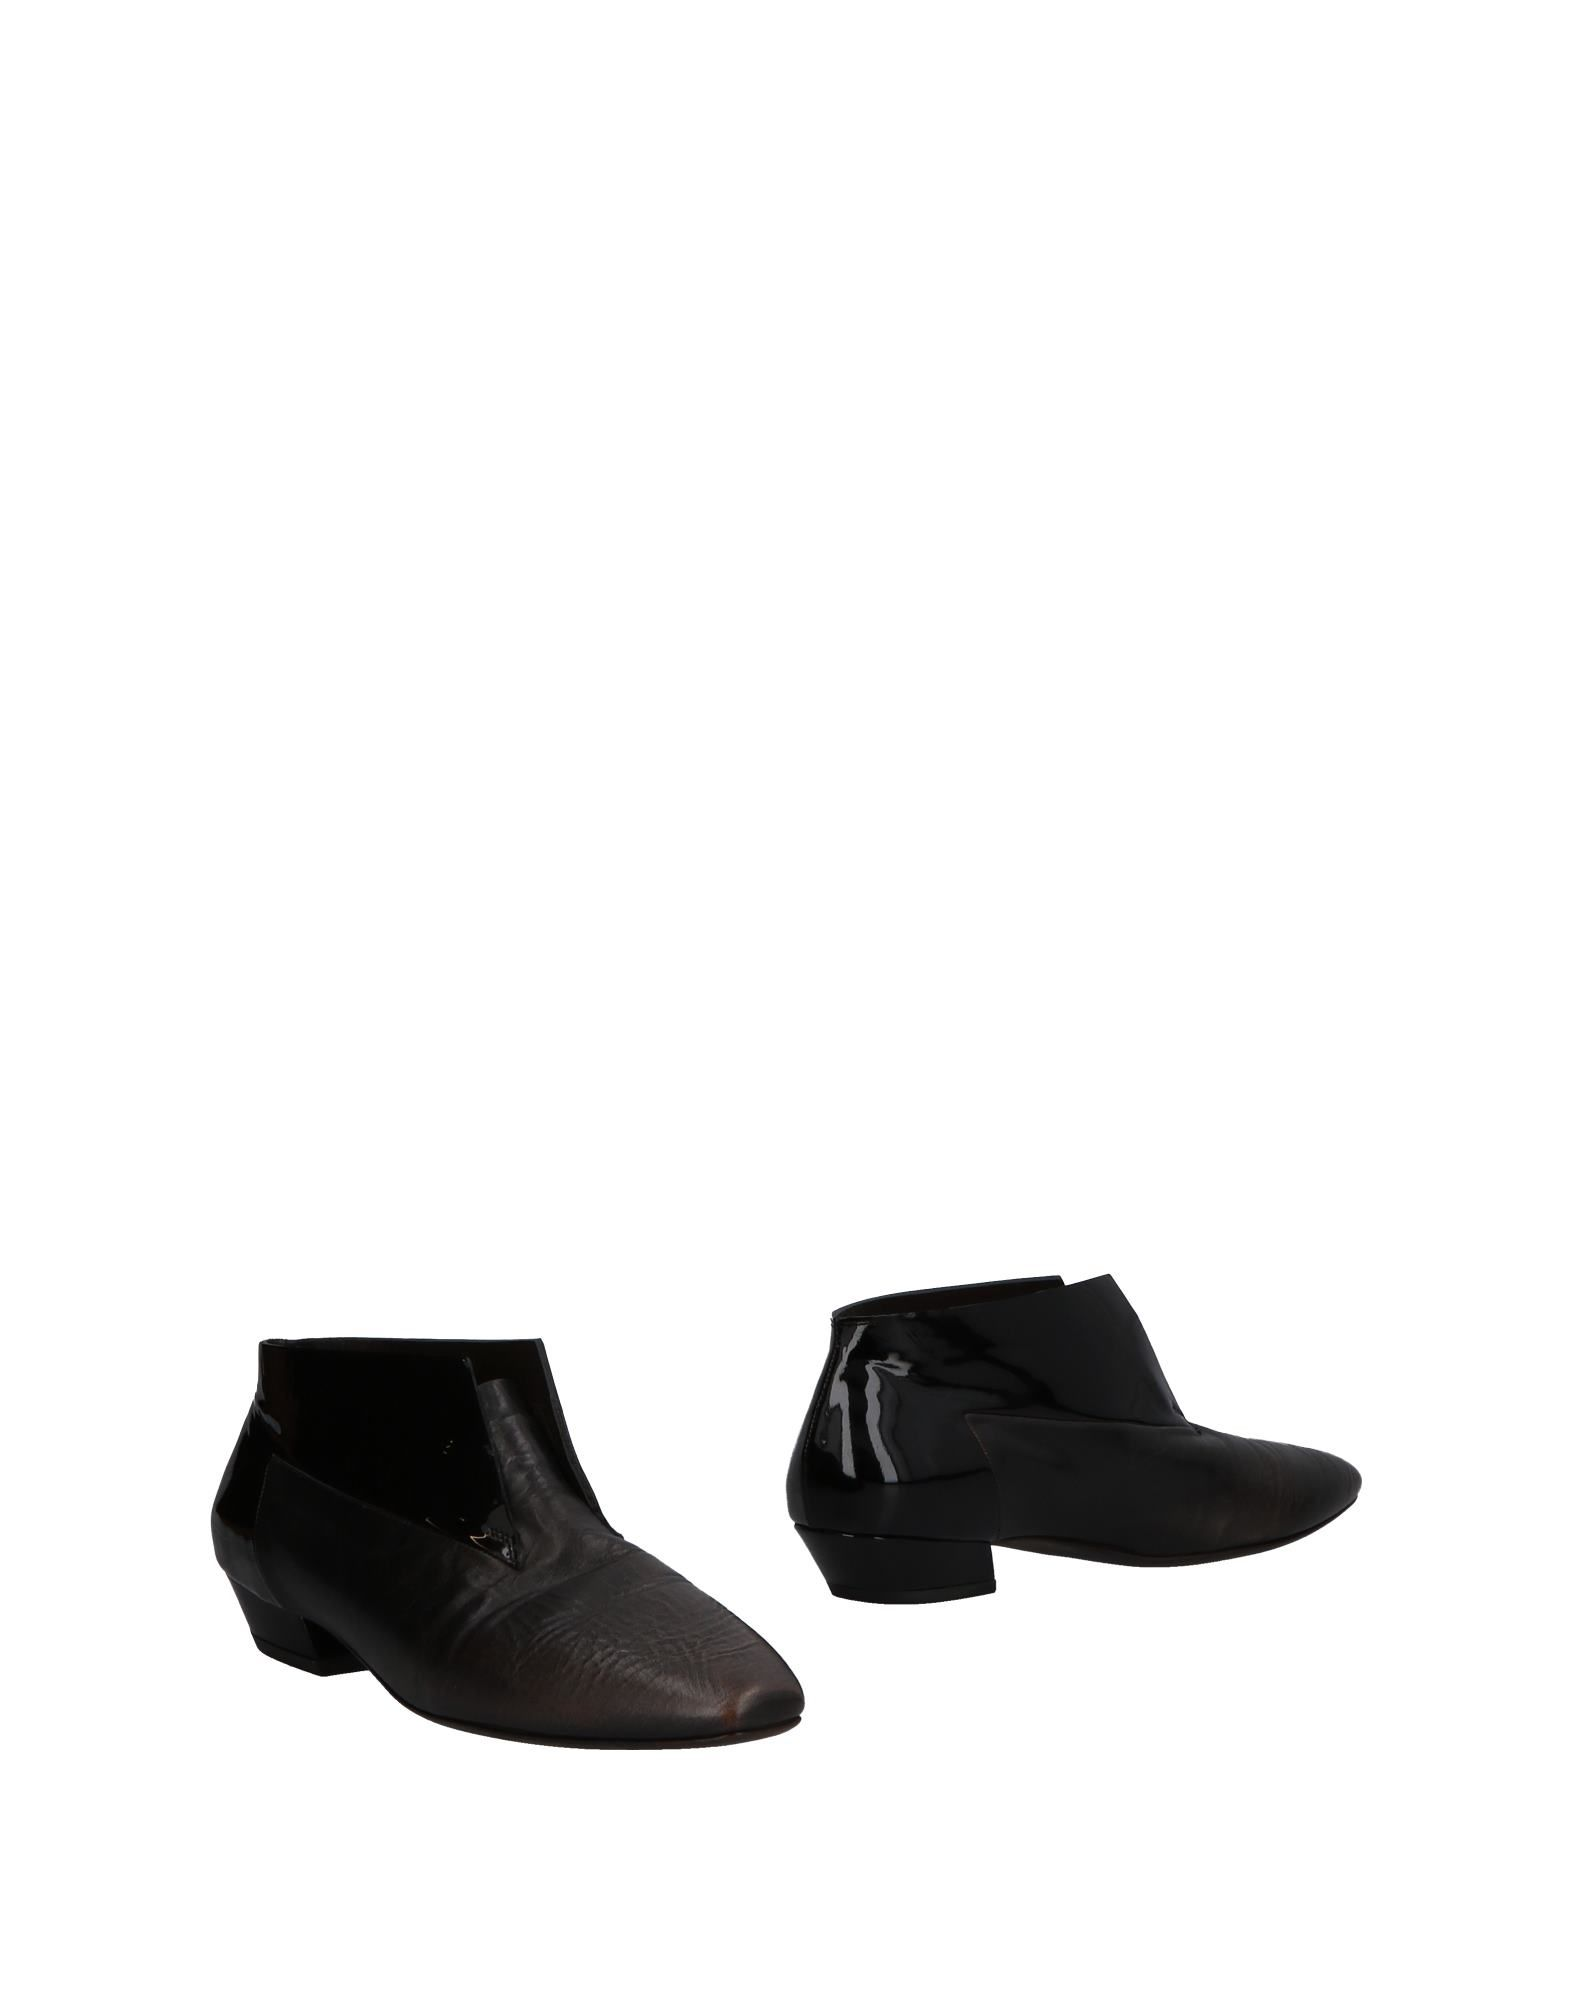 Marsèll Ankle Boot Boots - Women Marsèll Ankle Boots Boot online on  Australia - 11504967CQ 00ac82